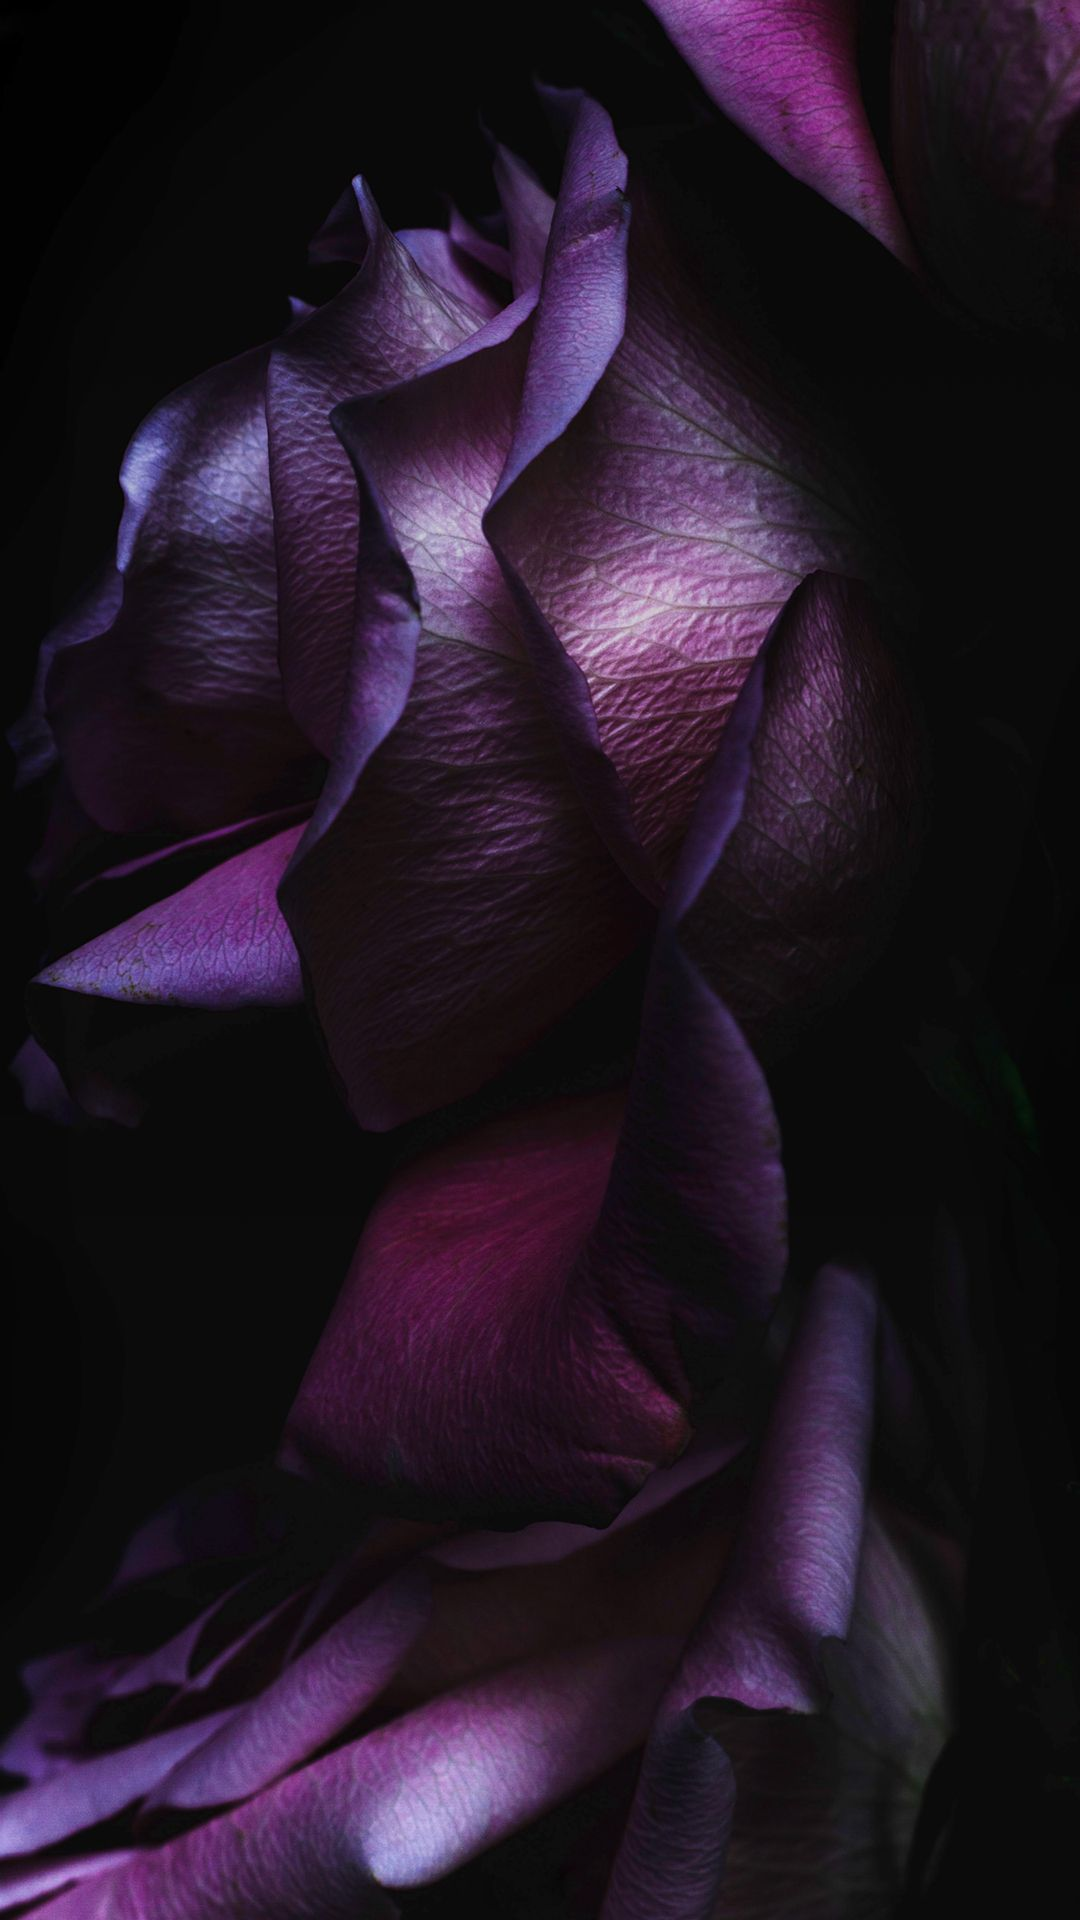 Ios9 Purple Rose Flower Art Wallpaper Iphone 6 Wallpaper